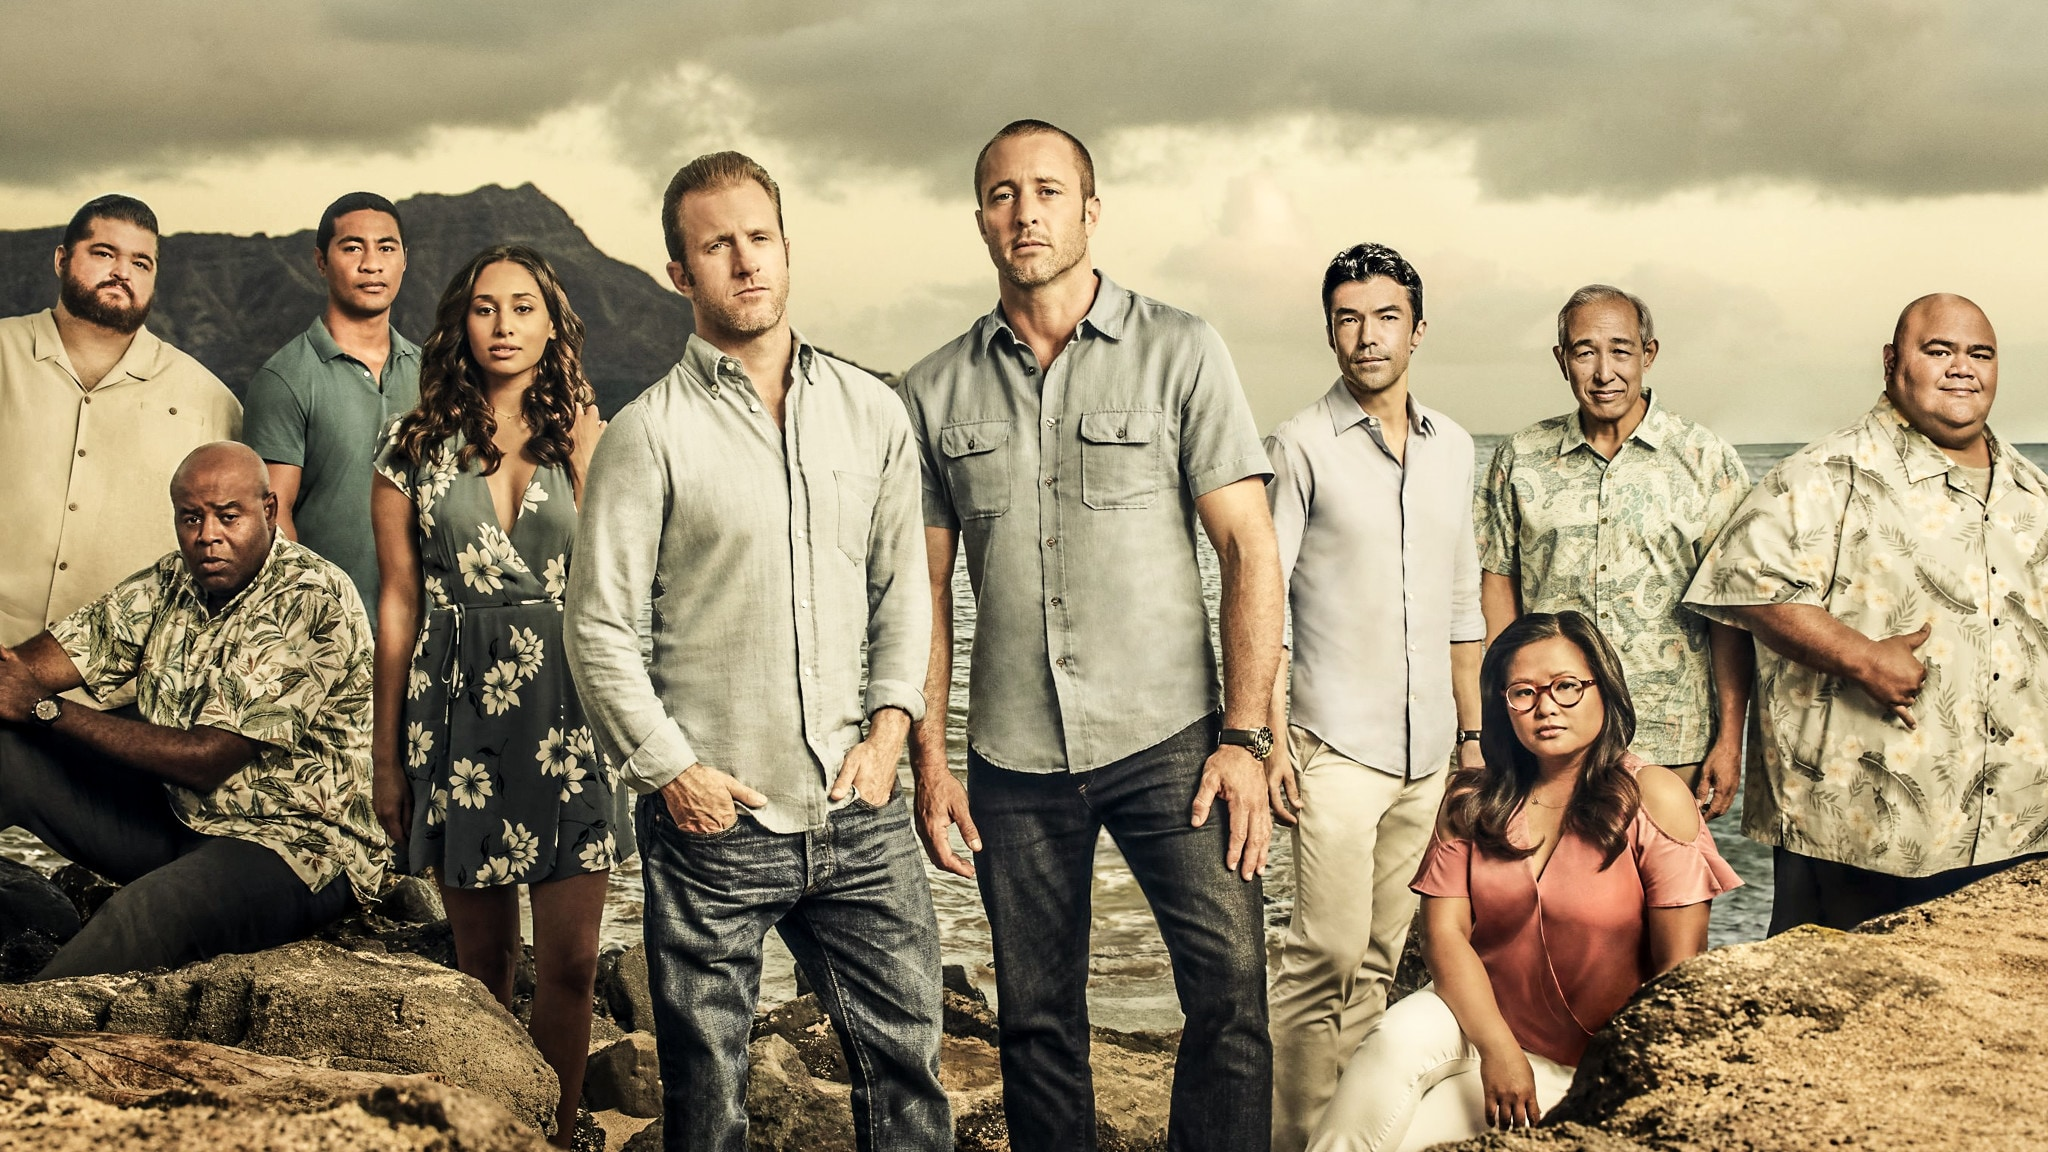 Rai 2 TELEFILM Hawaii Five - 0 Mentori e allievi